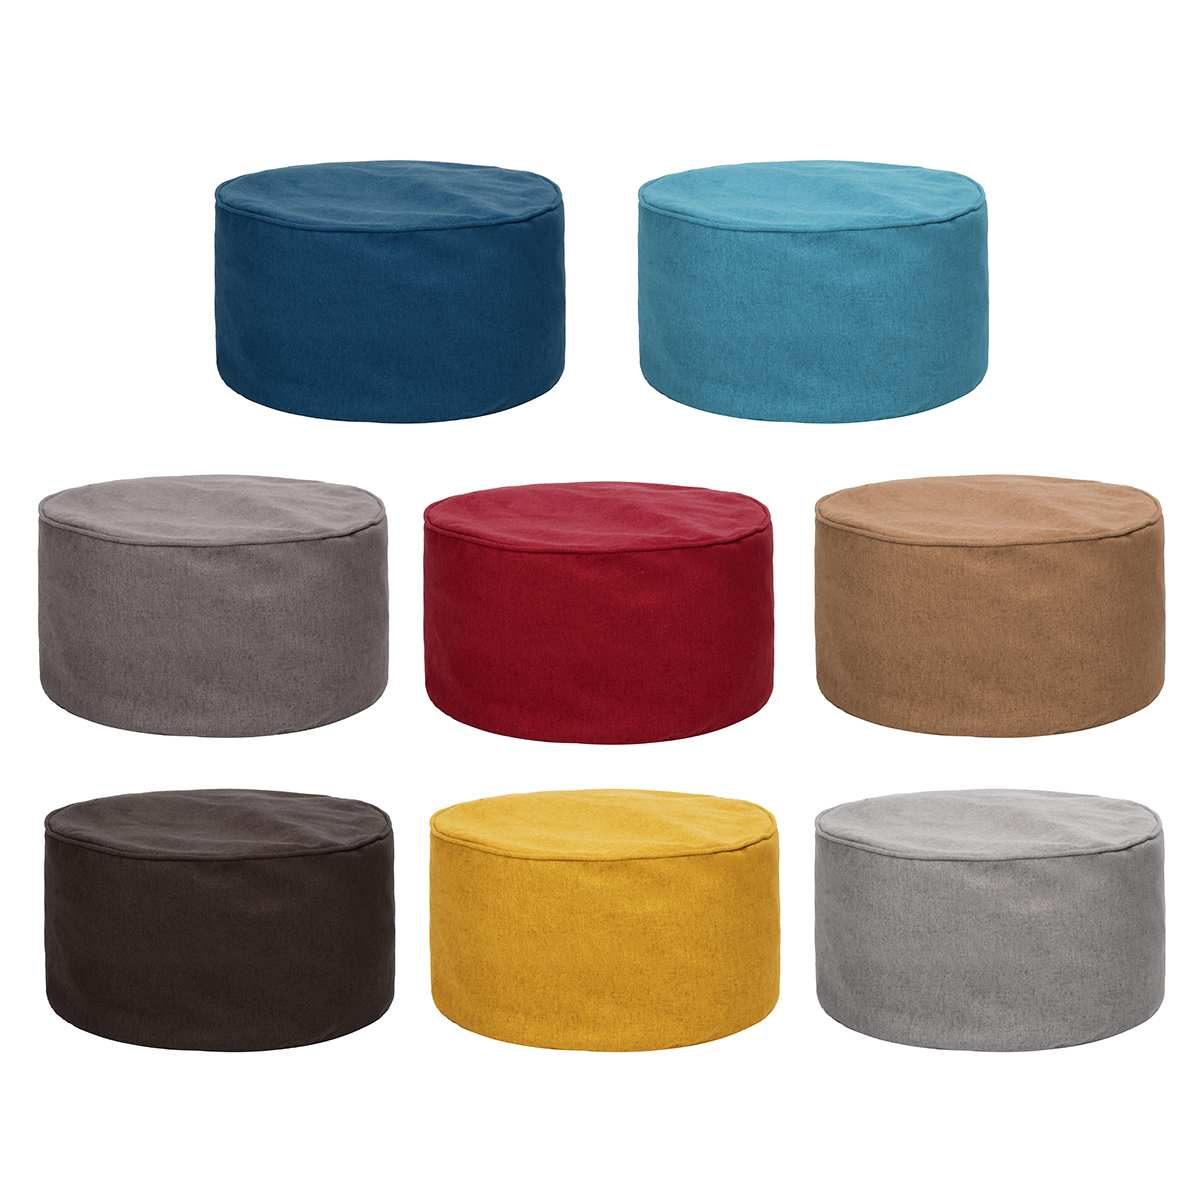 Living Room Table With Stools: Solid Color Living Room Stool Cover Home Fashion Sofa